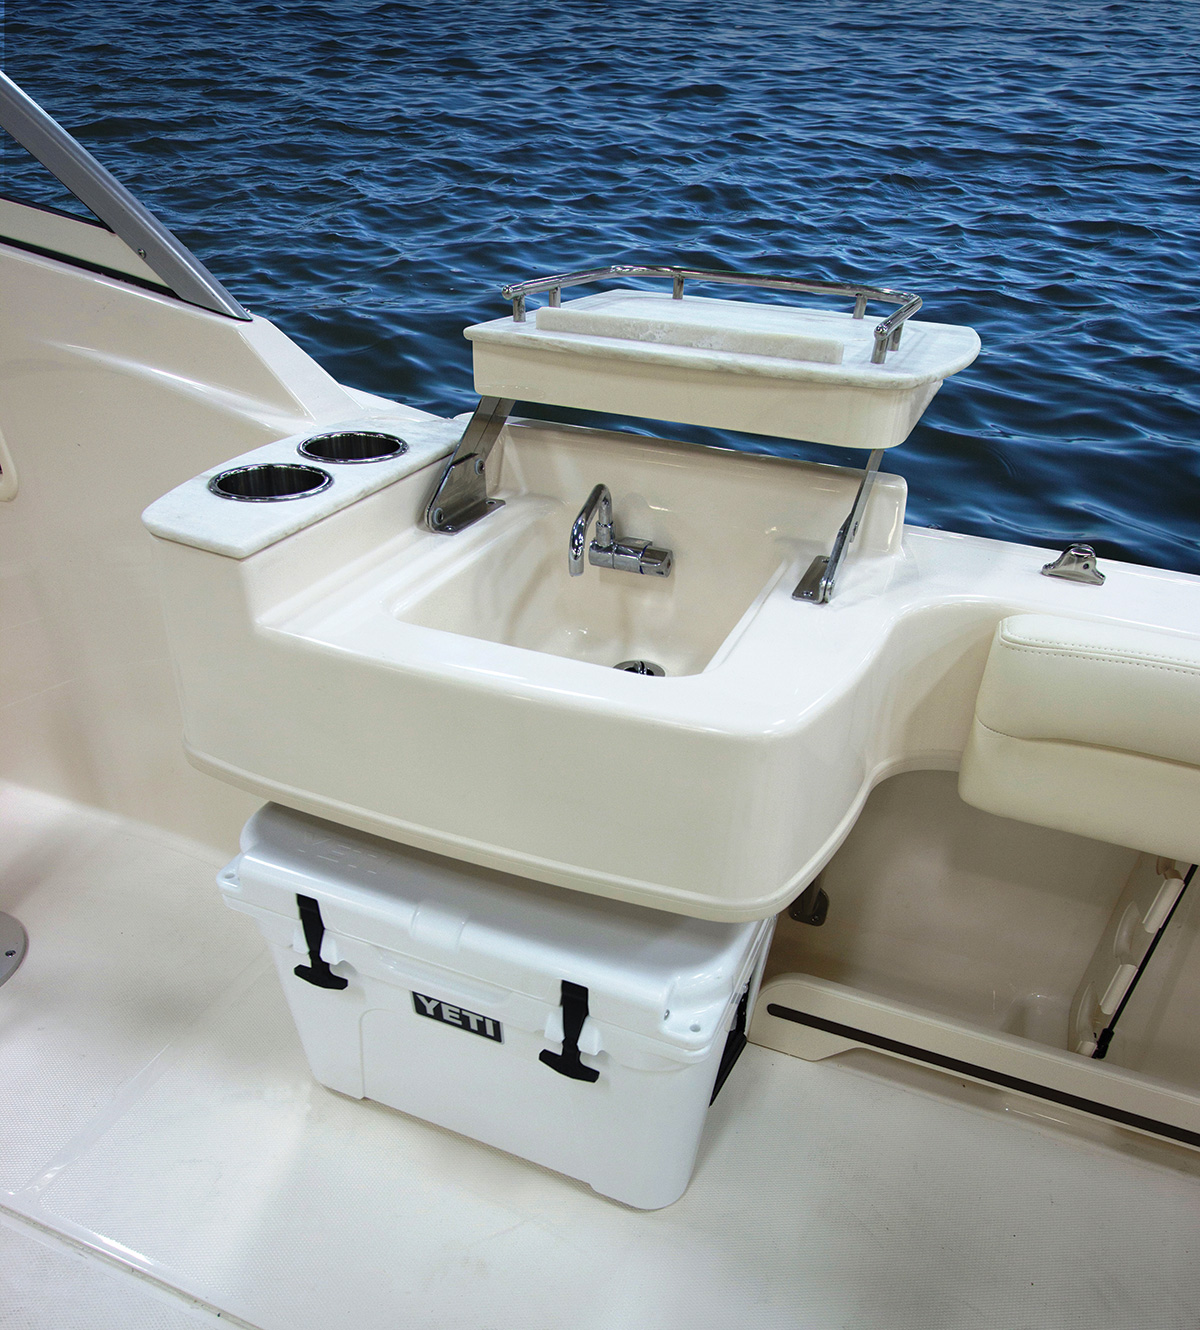 2017 9 Adding Functional Luxury To Your Boat Cockpit Galley & Upgraded Cooler Cmyk